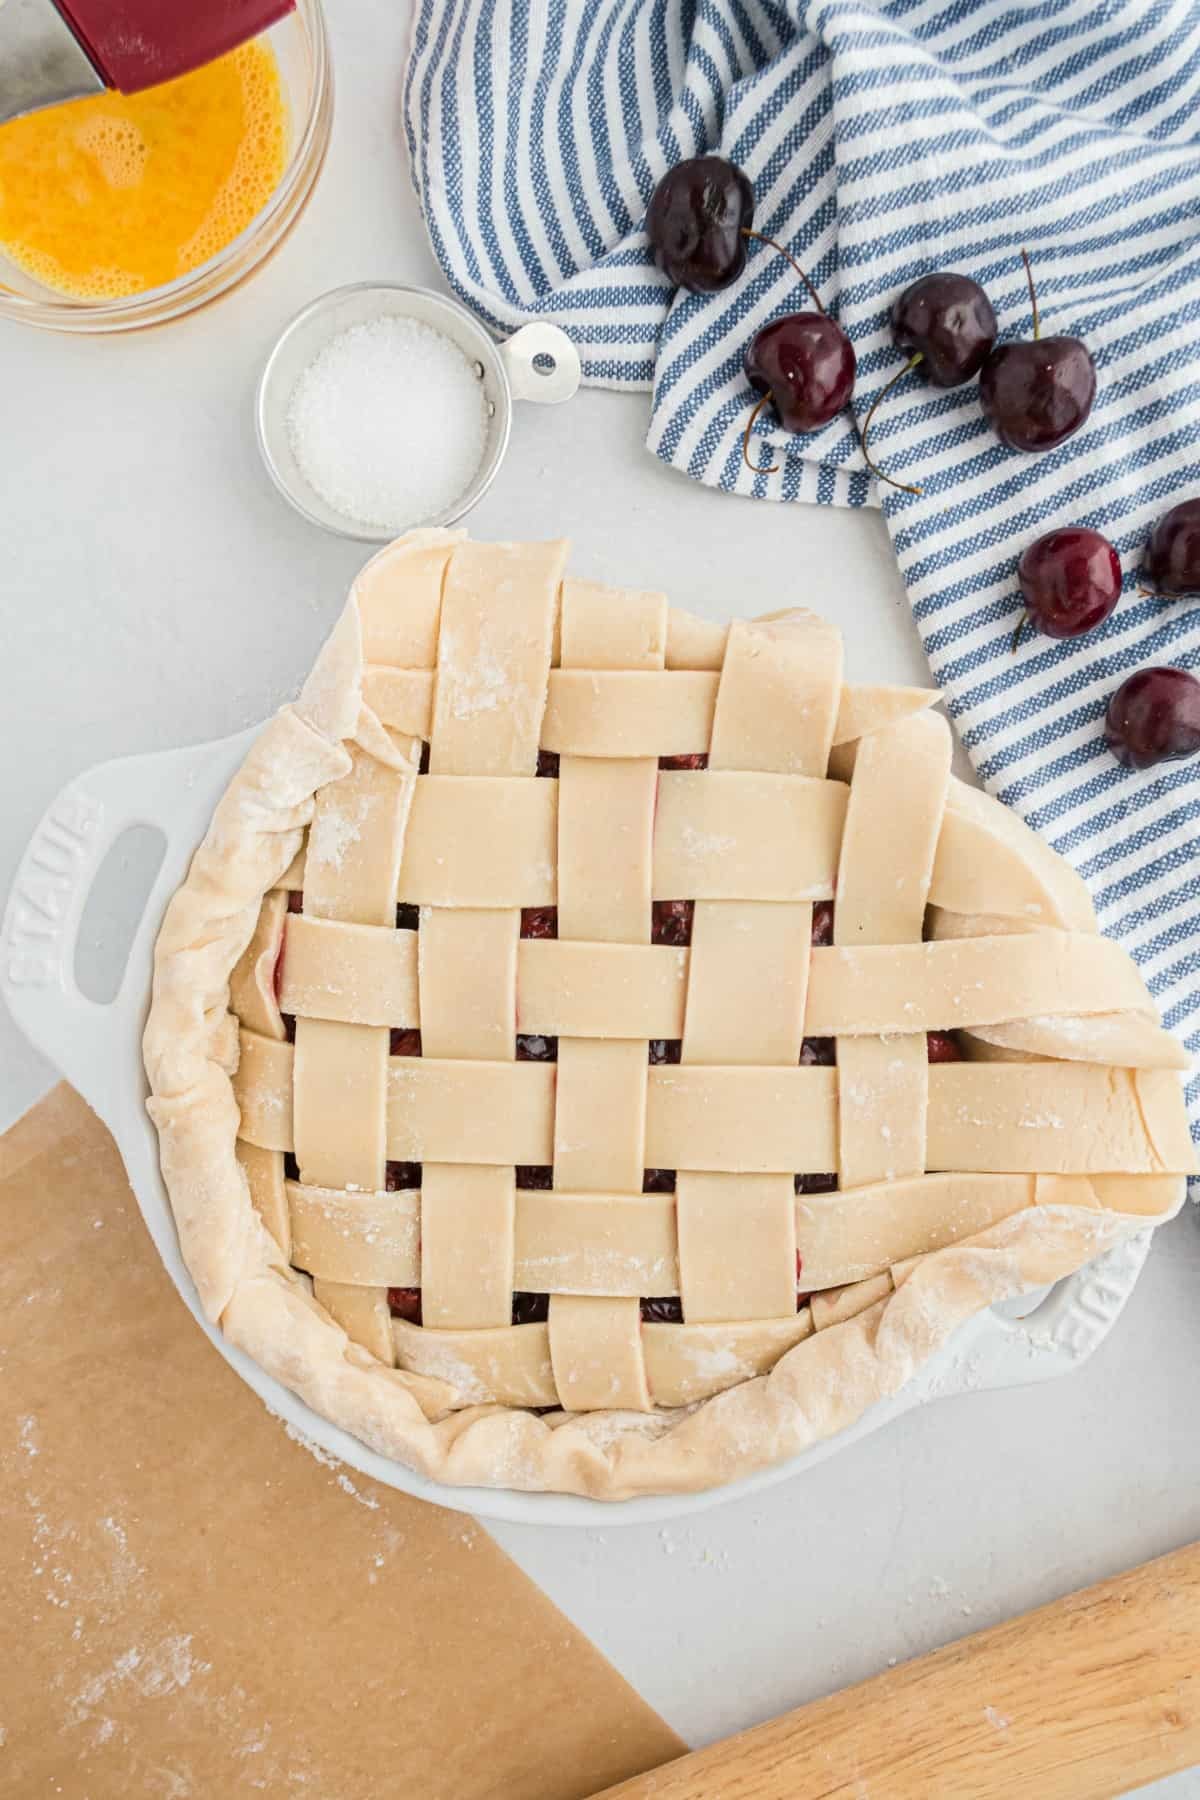 How to fold the edge of a lattice pie crust to make it even.